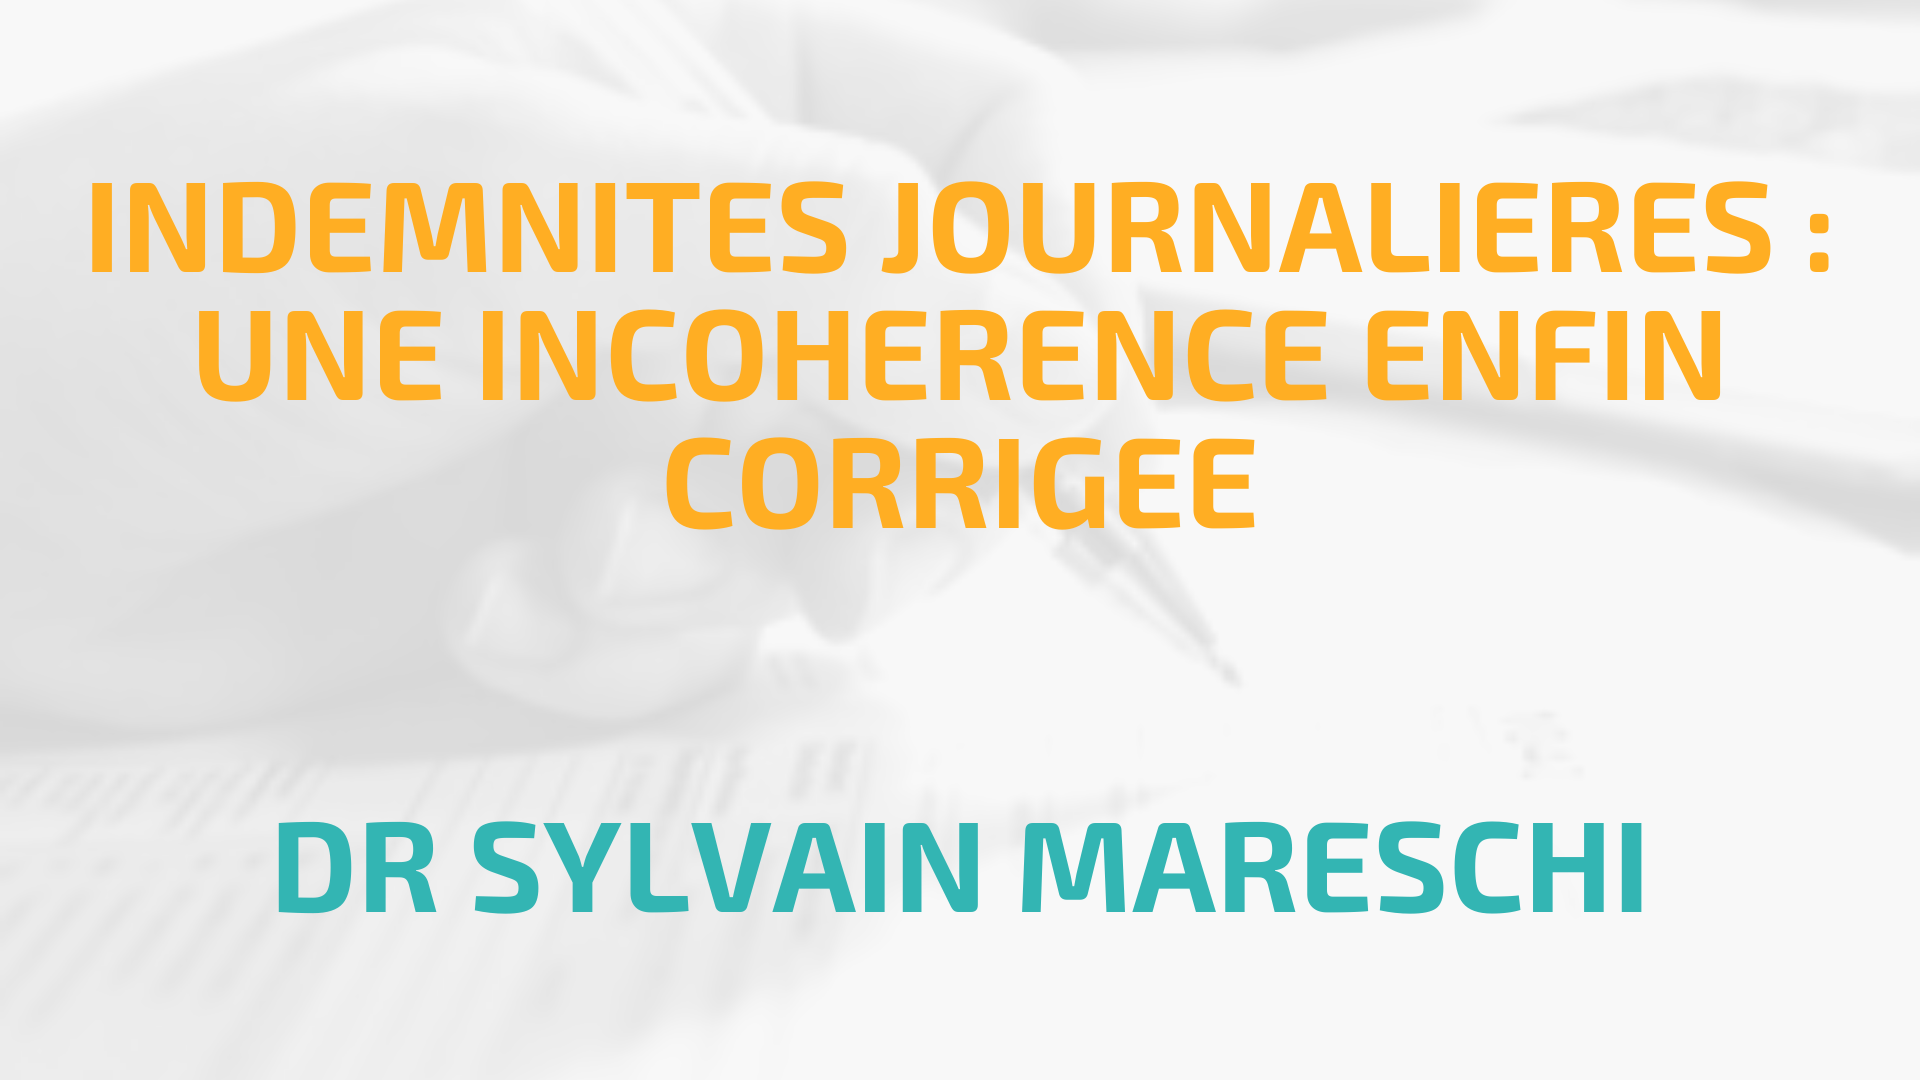 INDEMNITES JOURNALIERES : UNE INCOHERENCE ENFIN CORRIGEE